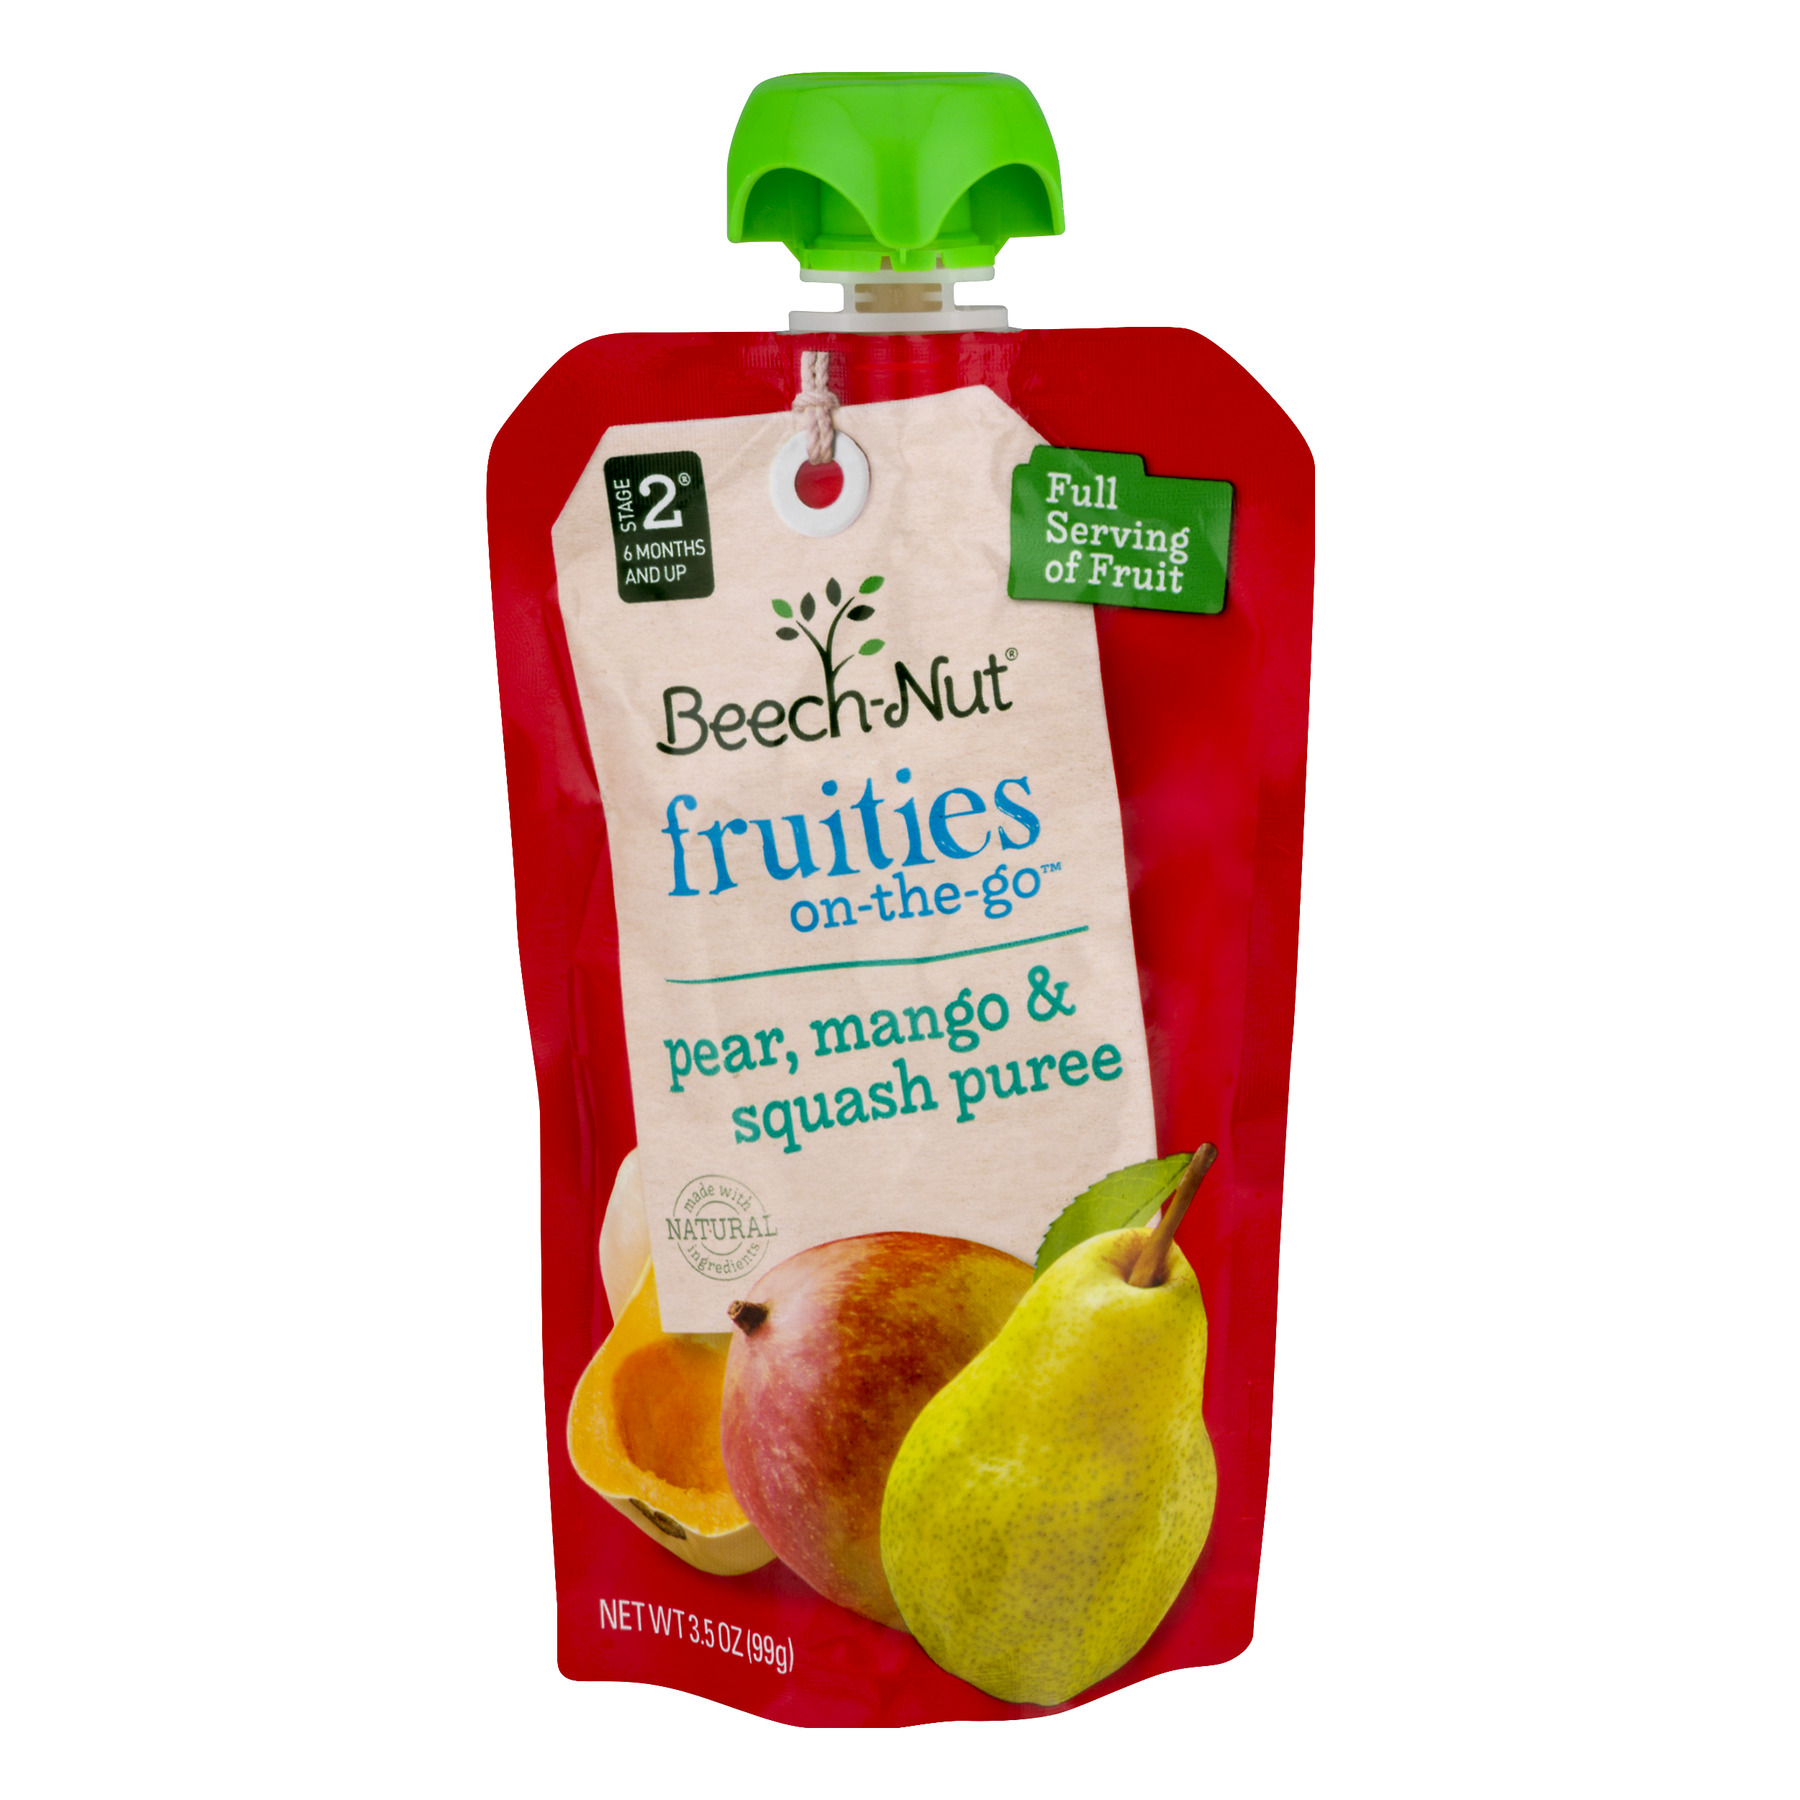 (5 Pack) Beech-Nut Stage 2 Fruities On-The-Go Pear, Mango & Squash Puree, 3.5 OZ